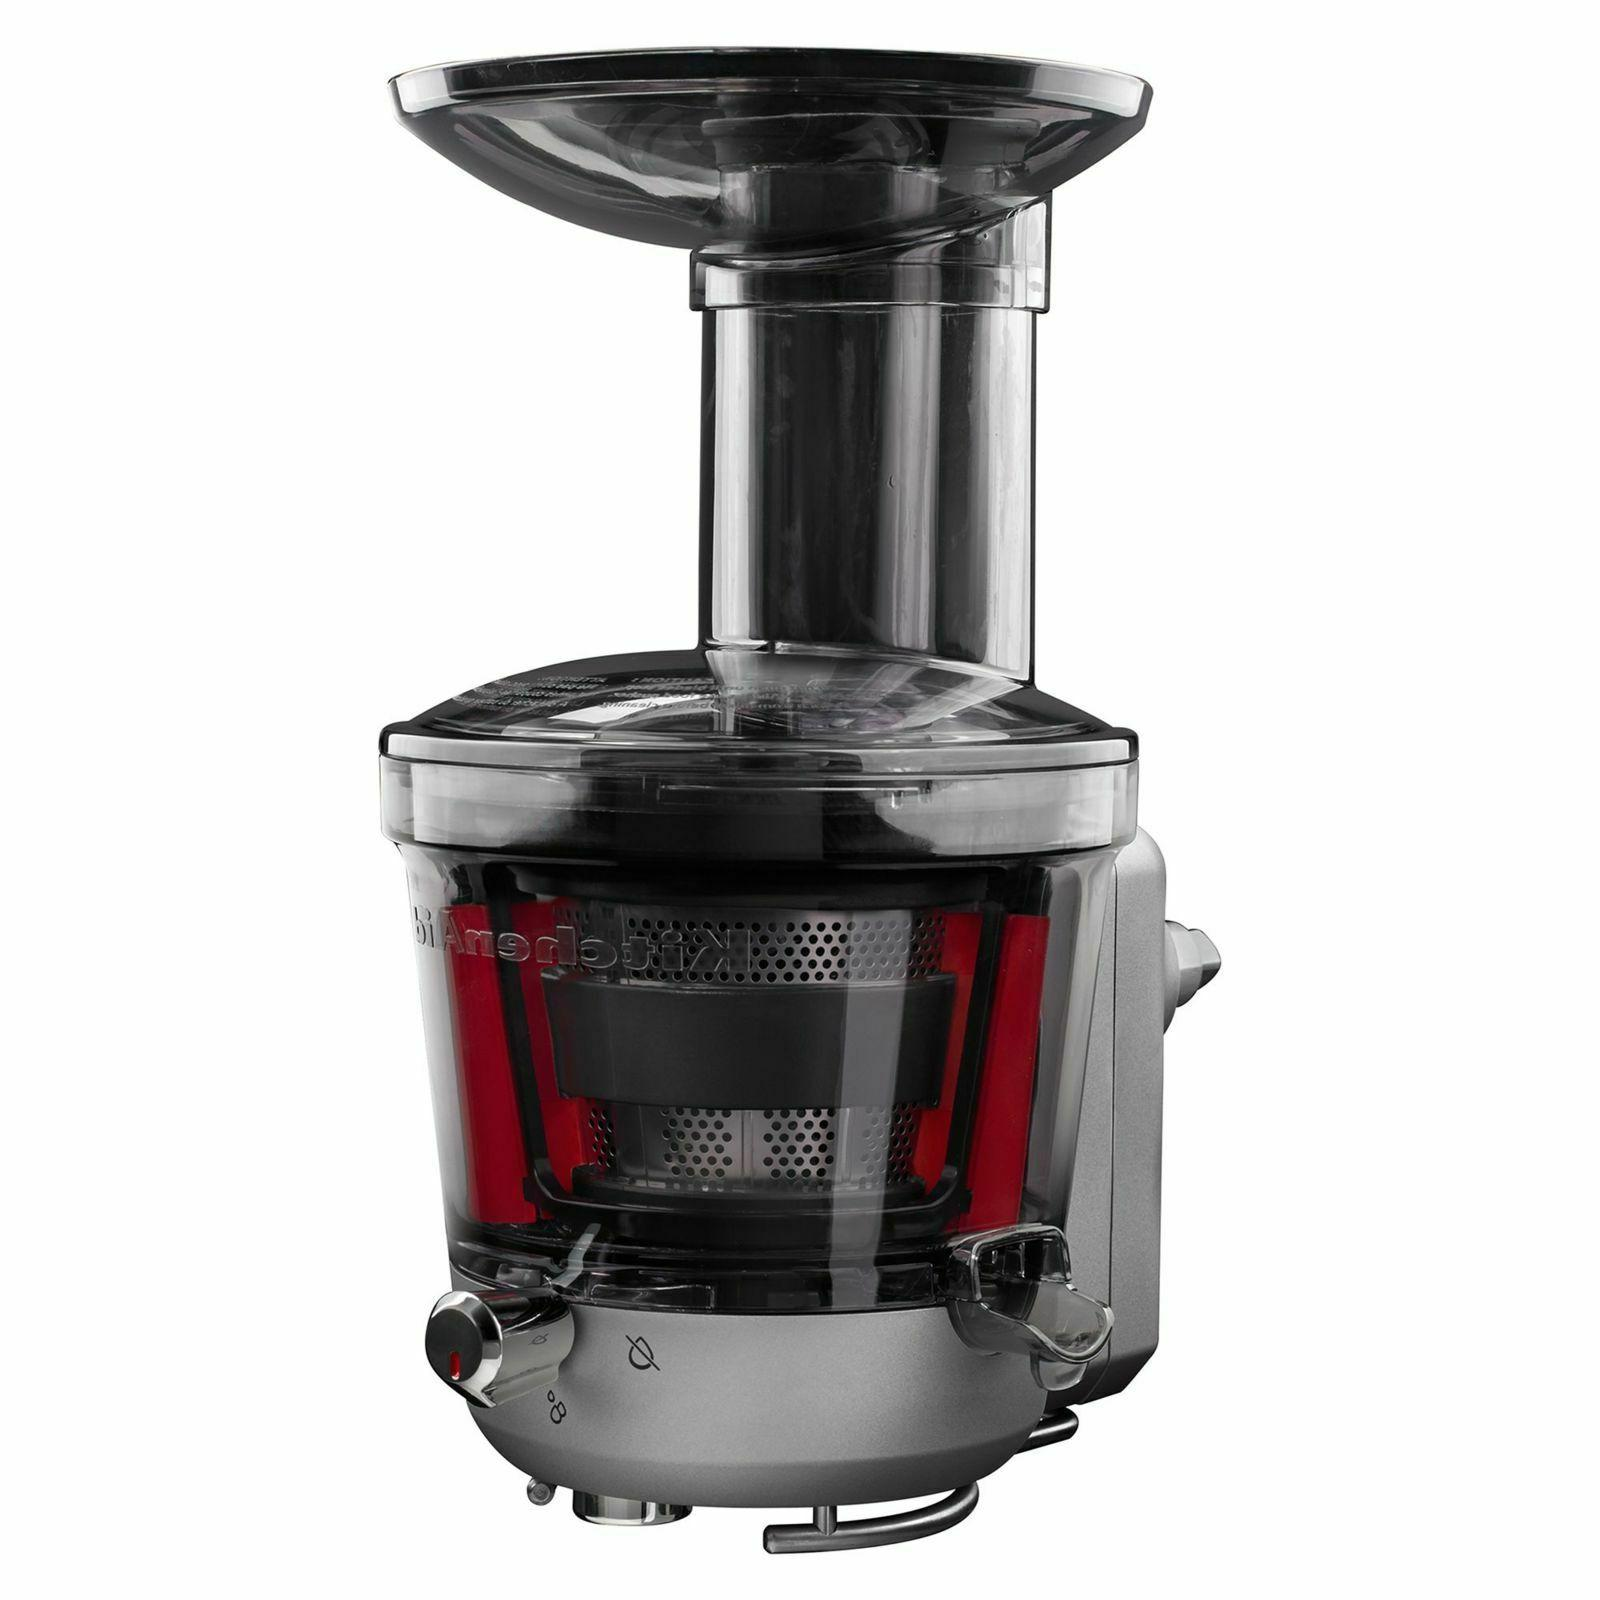 juicer and sauce attachment for stand mixer